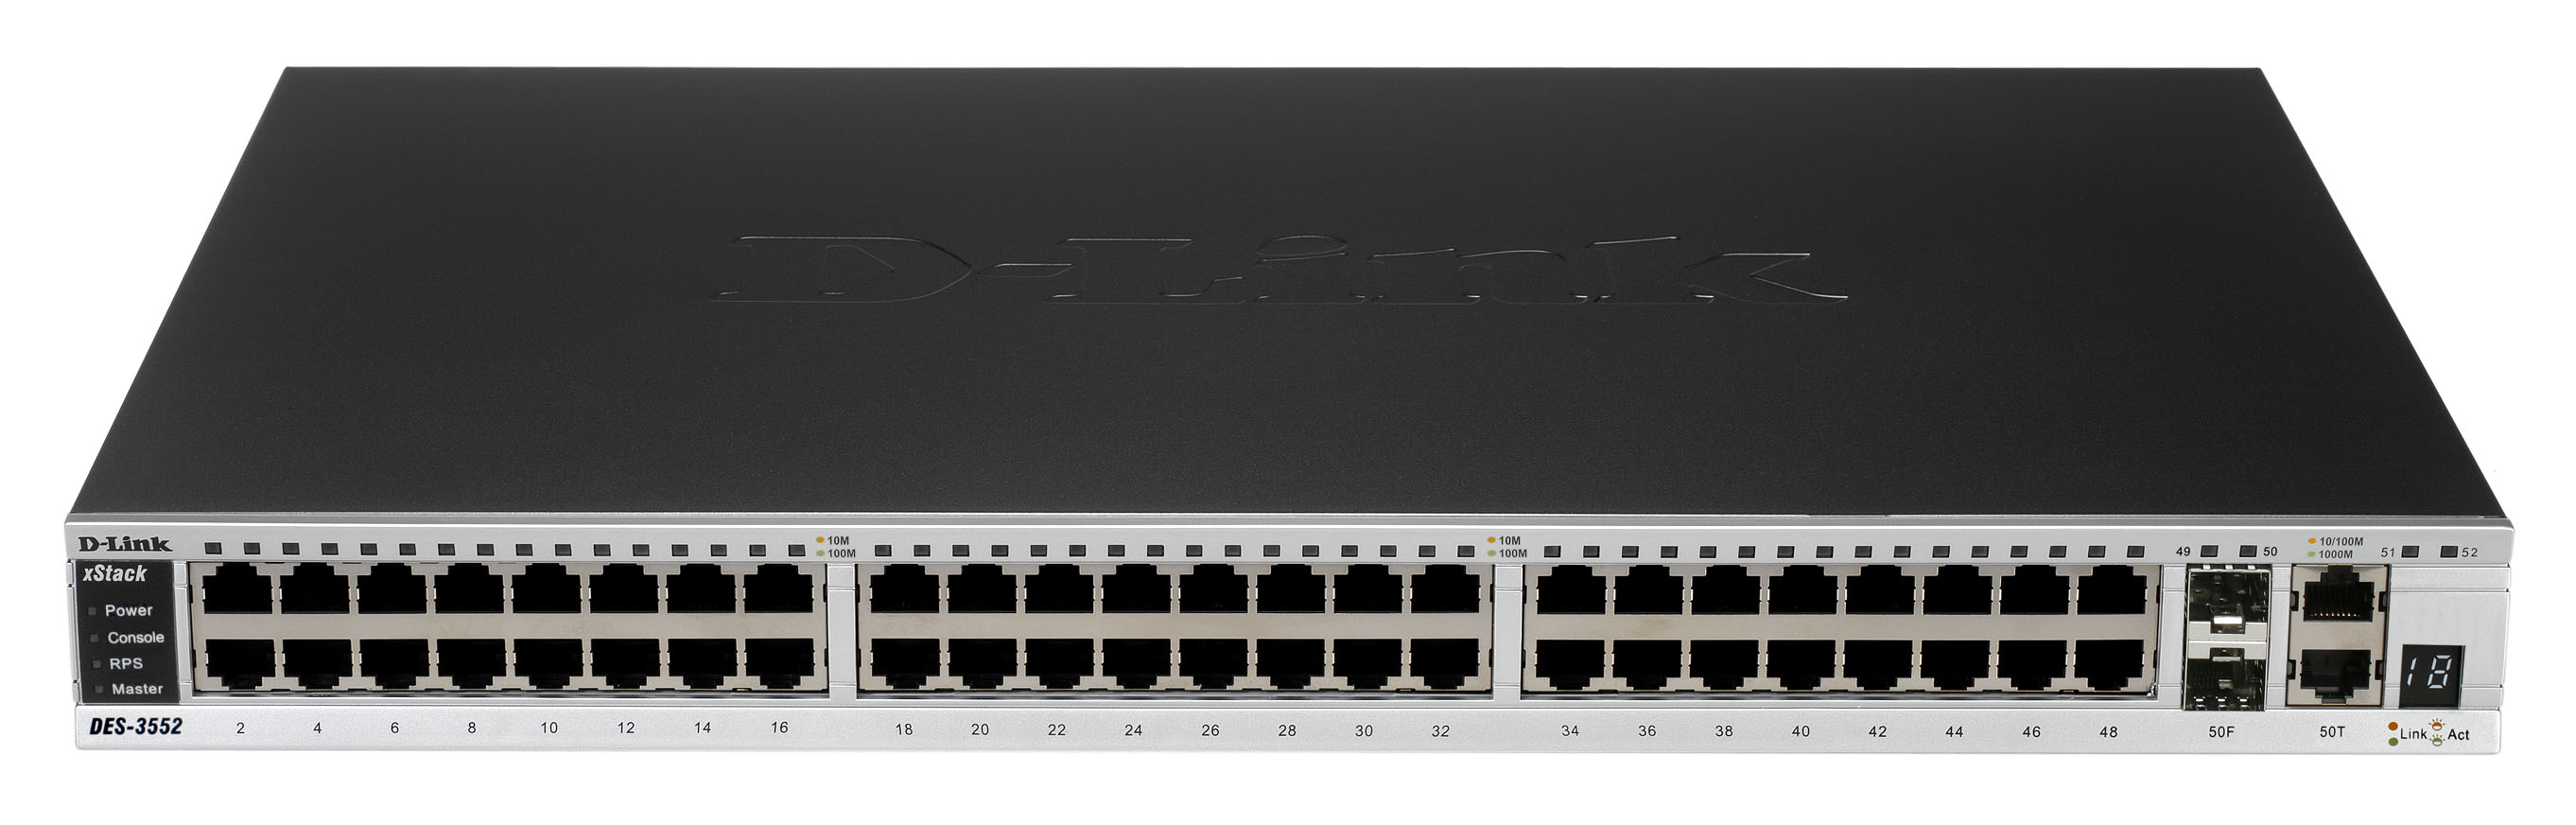 DLINK DES-3528 MANAGED SWITCH DRIVERS FOR WINDOWS